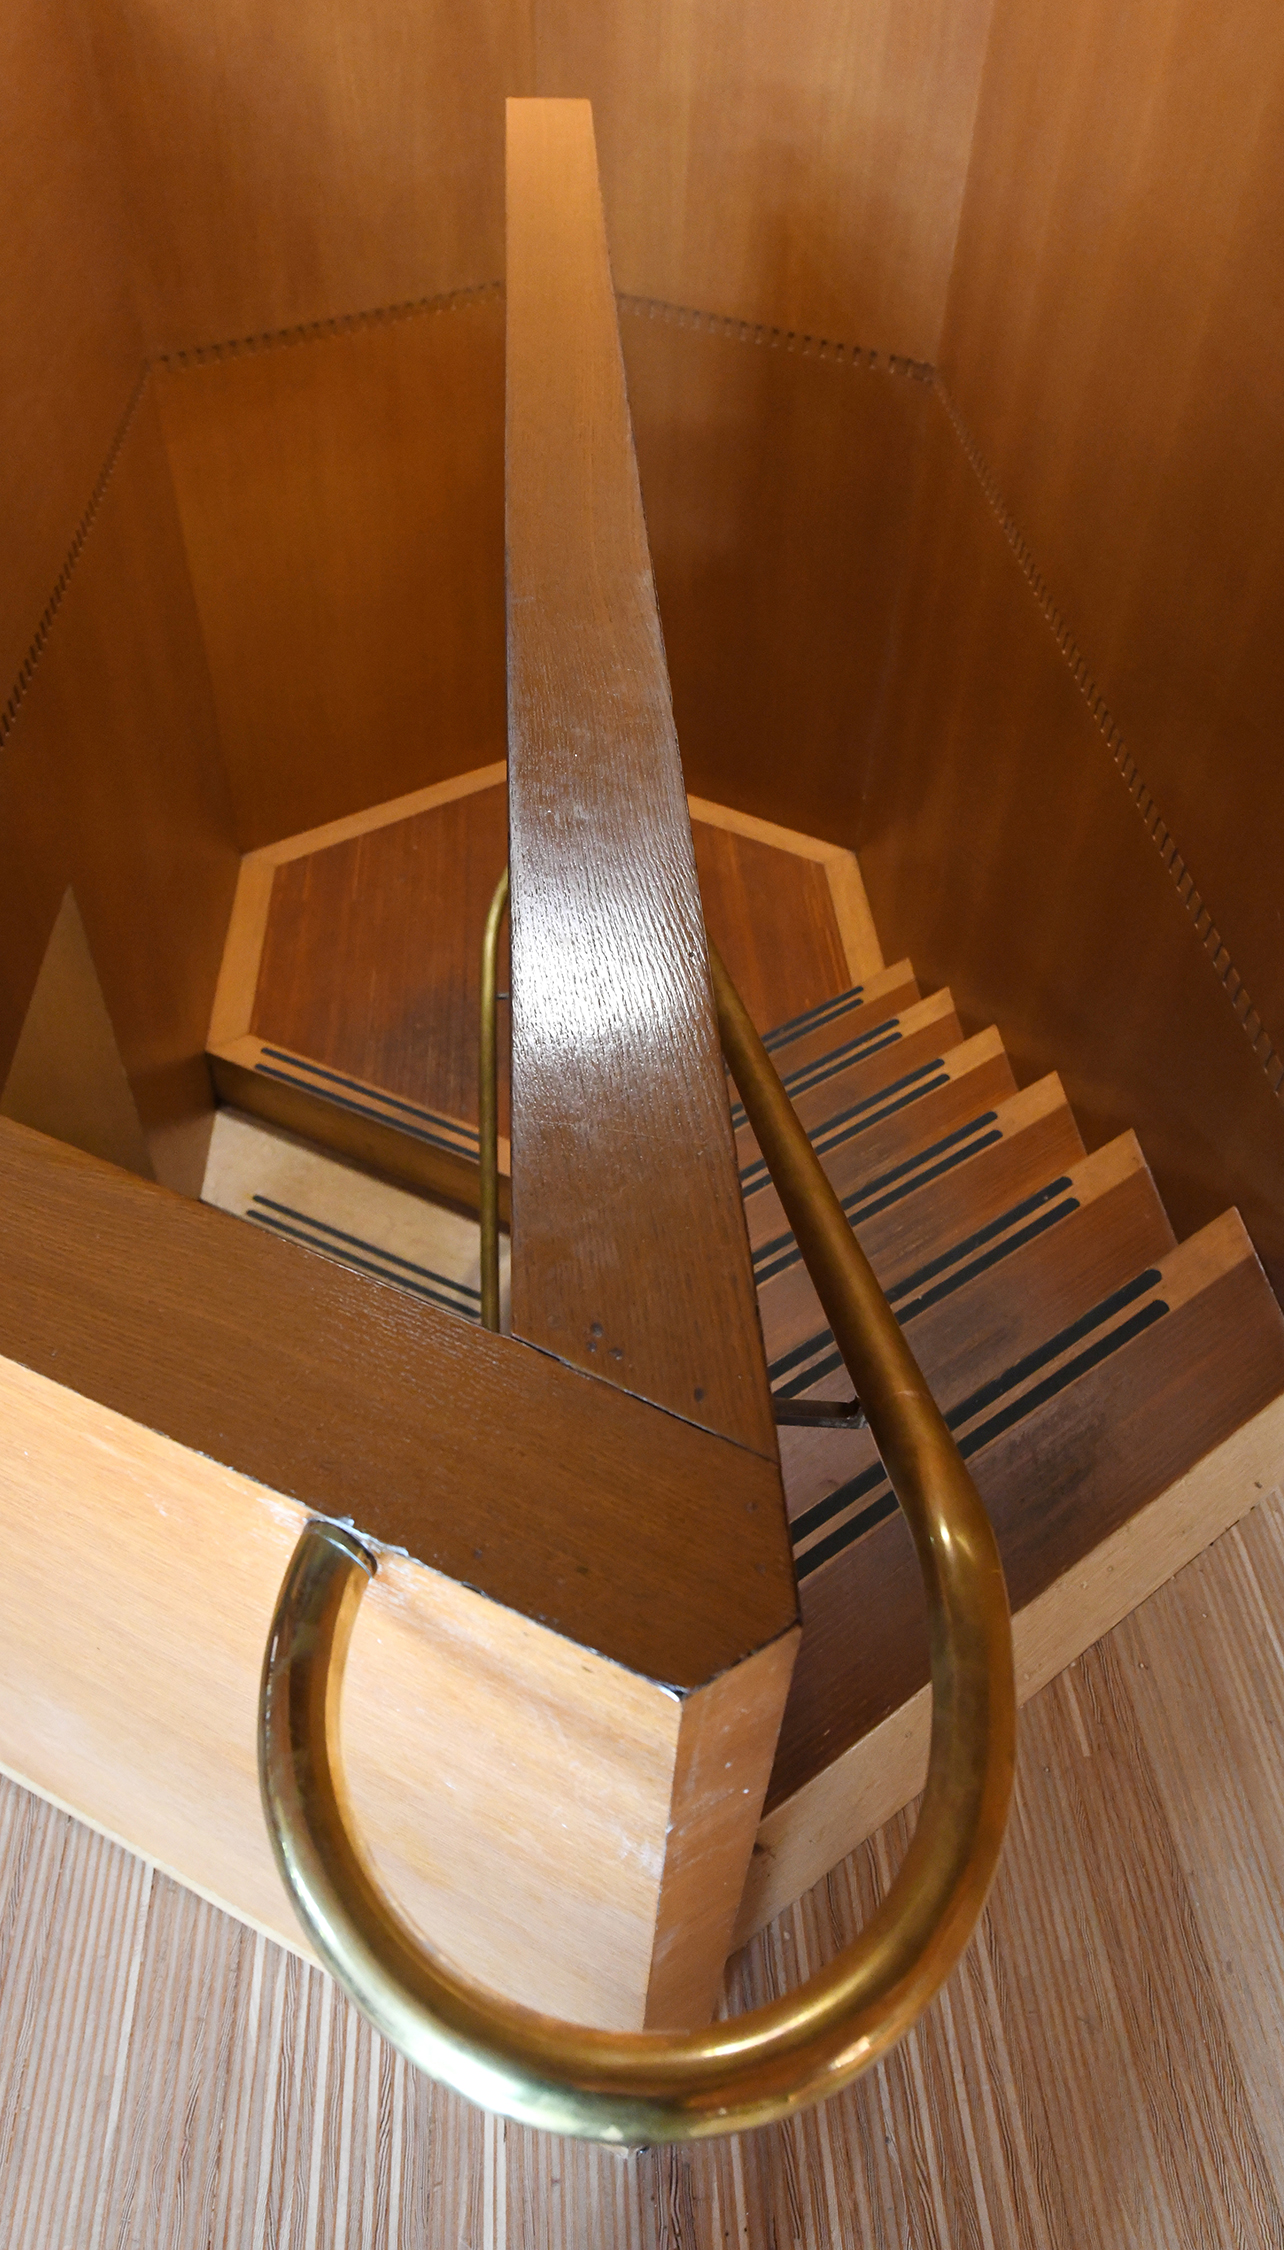 Wingspread Stairs 9.23.19.jpg